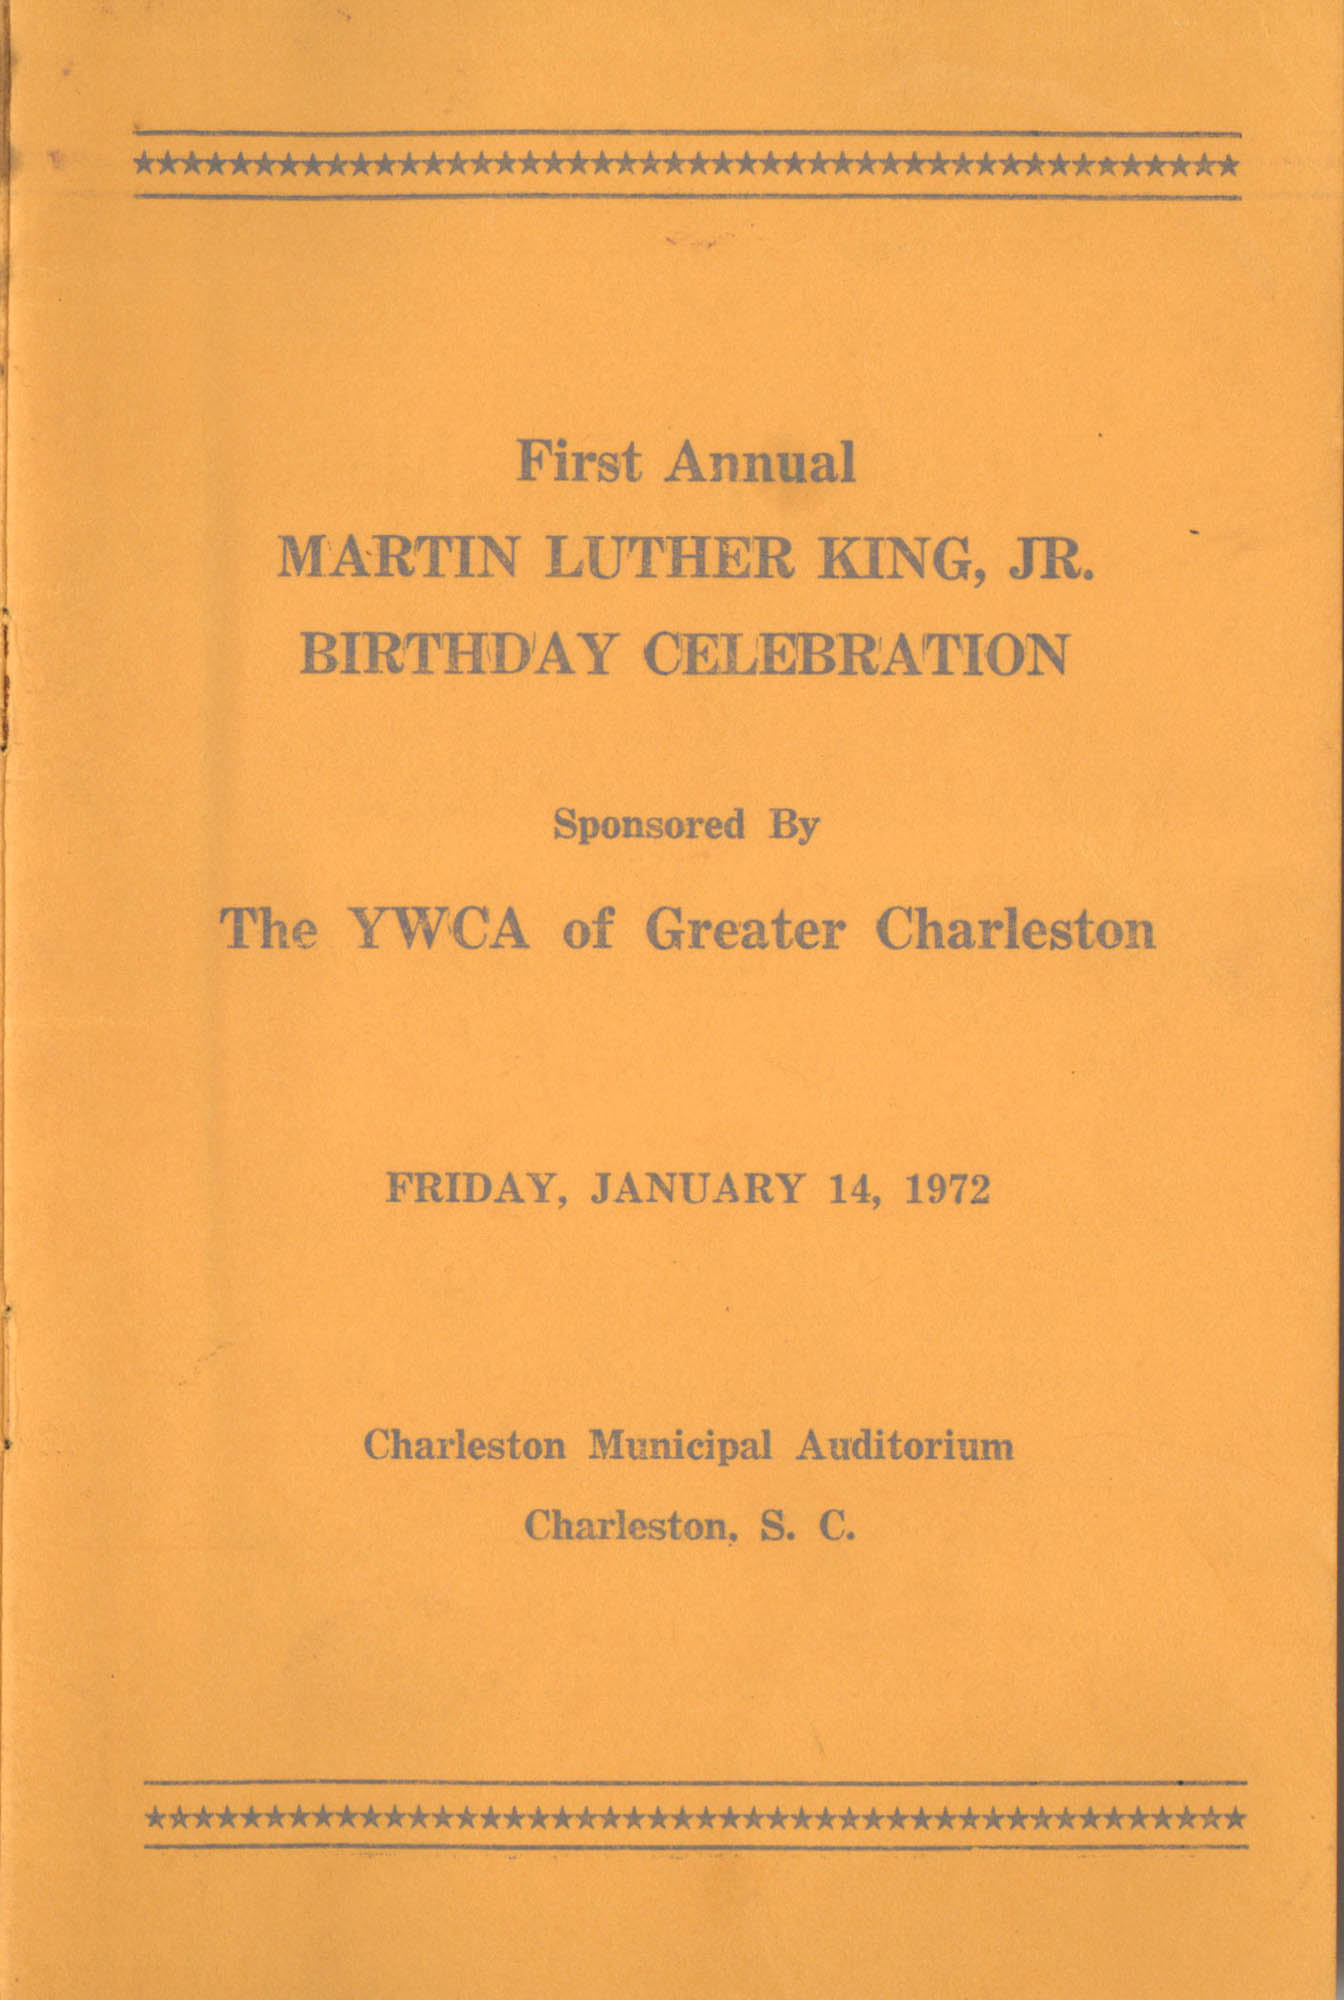 First Annual Martin Luther King, Jr. Birthday Celebration